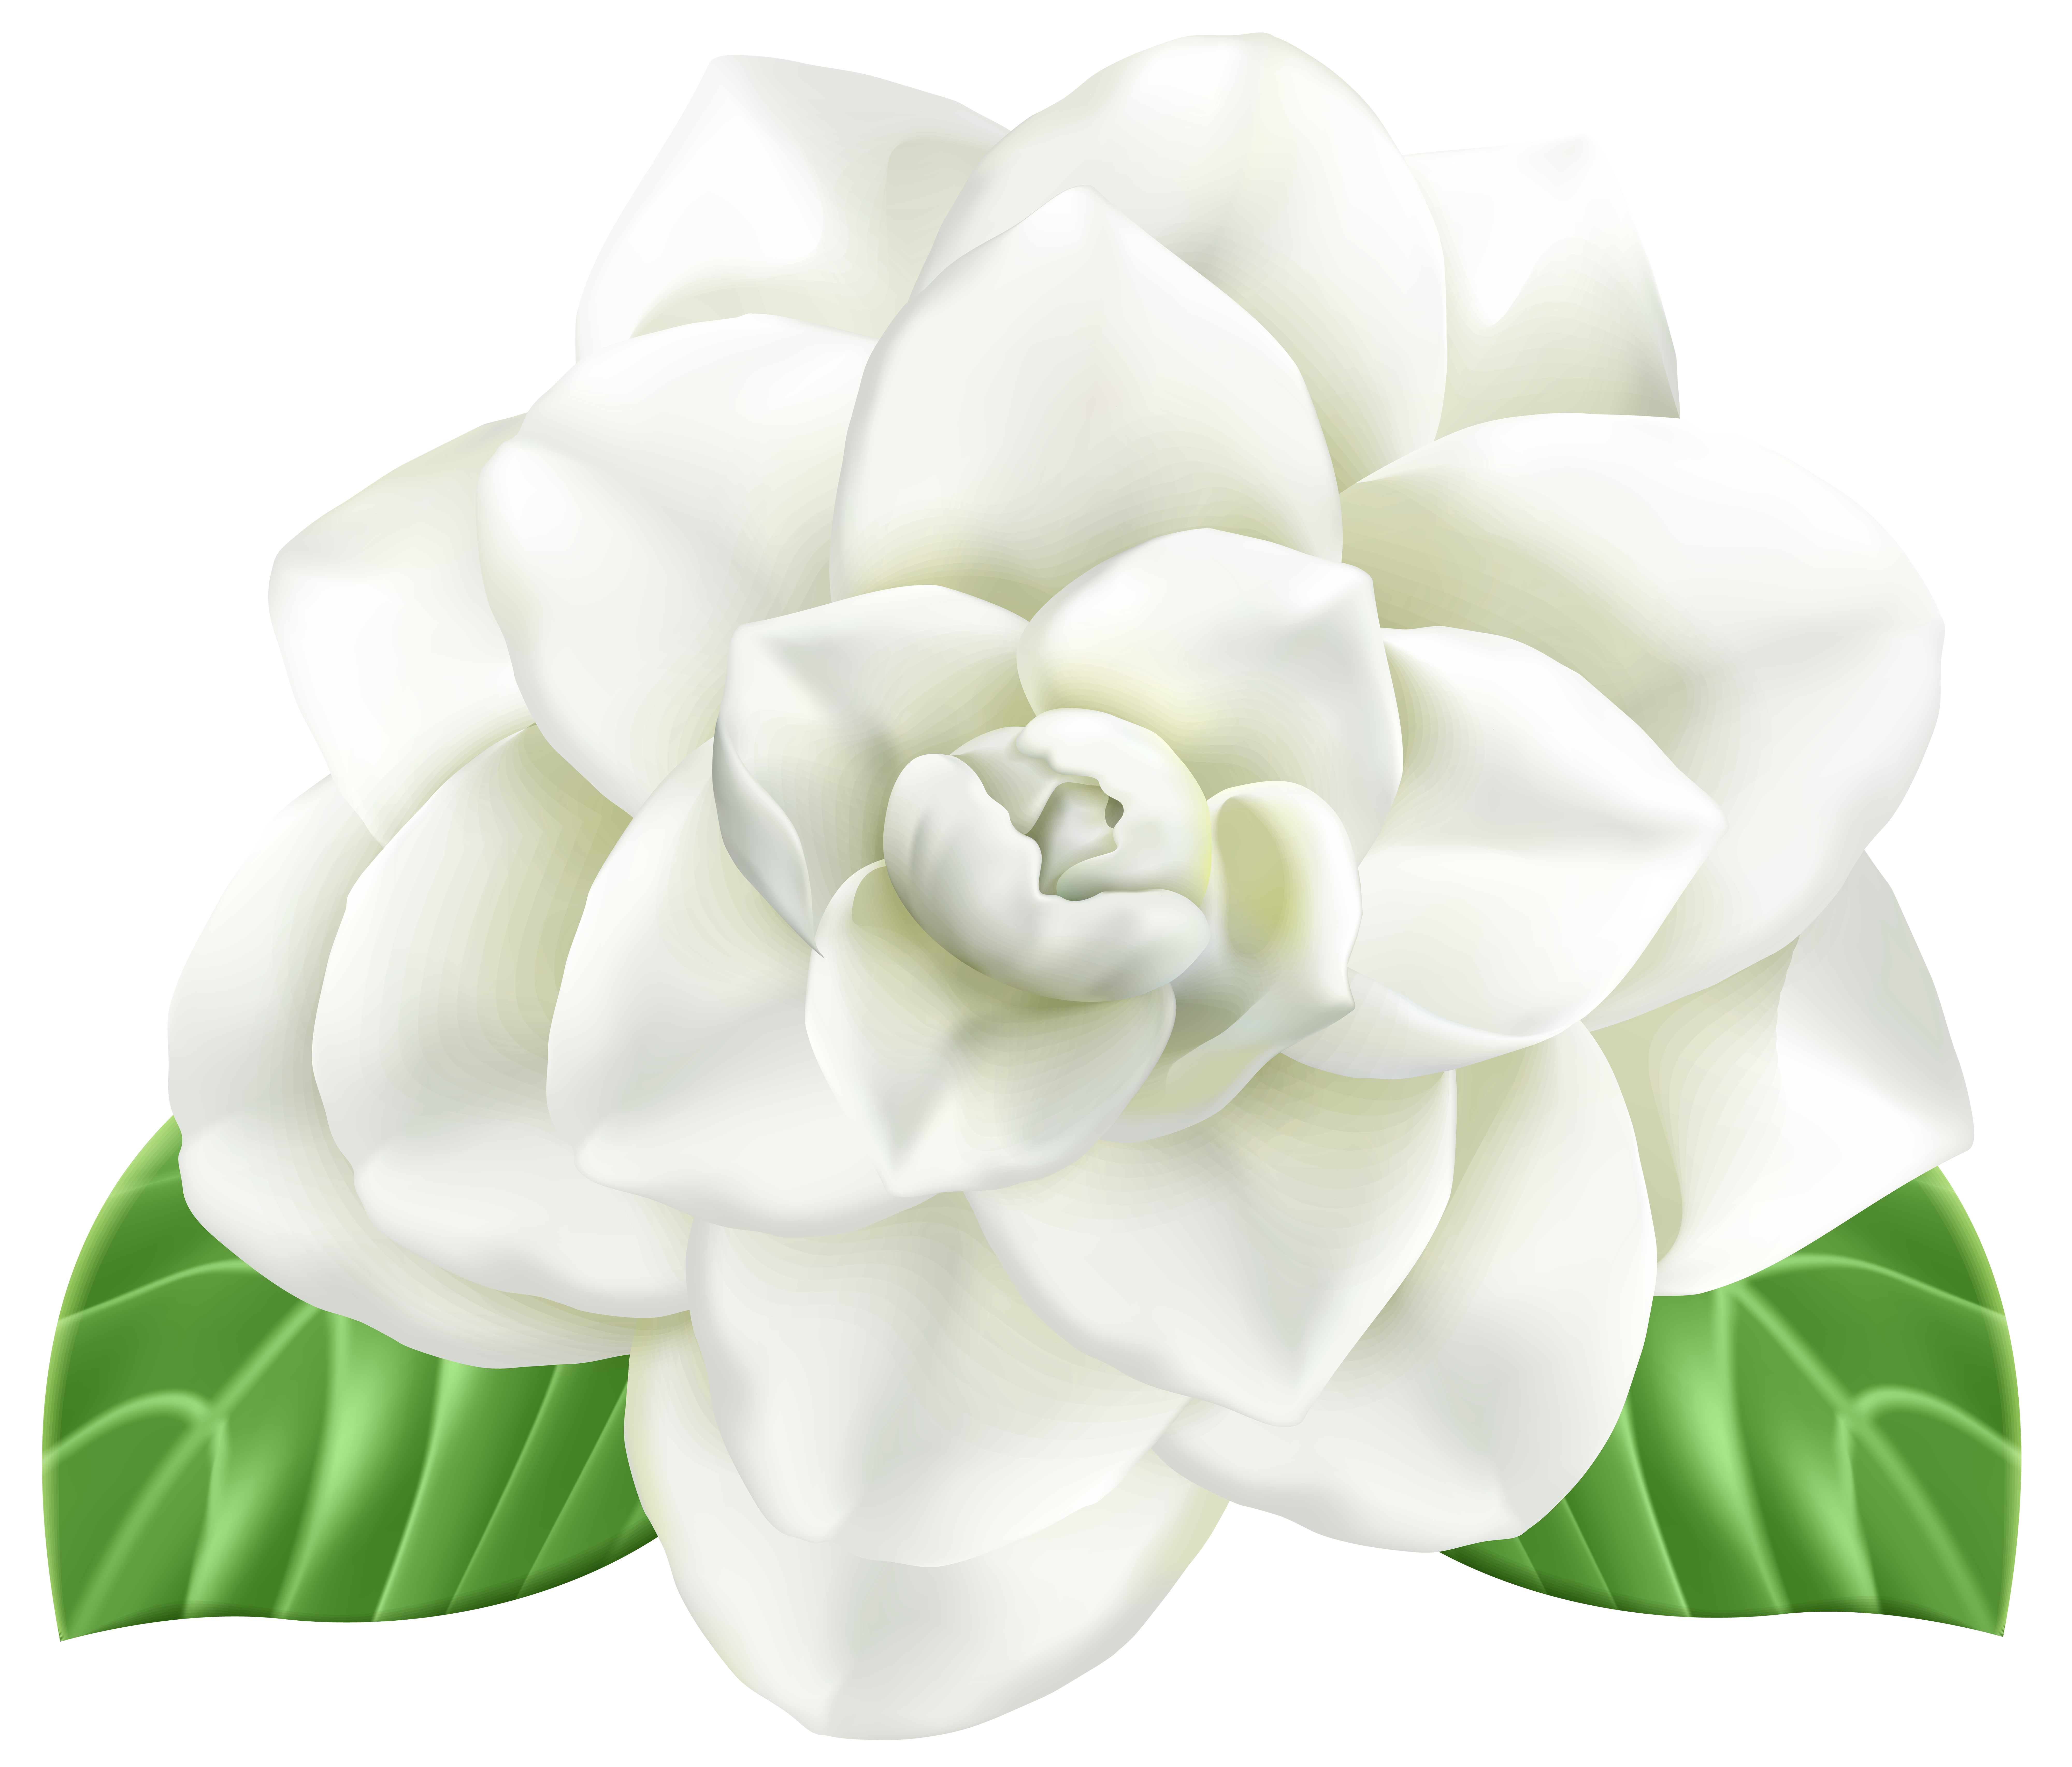 Flower PNG Clip Art Image   Gallery Yopriceville - High-Quality ... banner freeuse